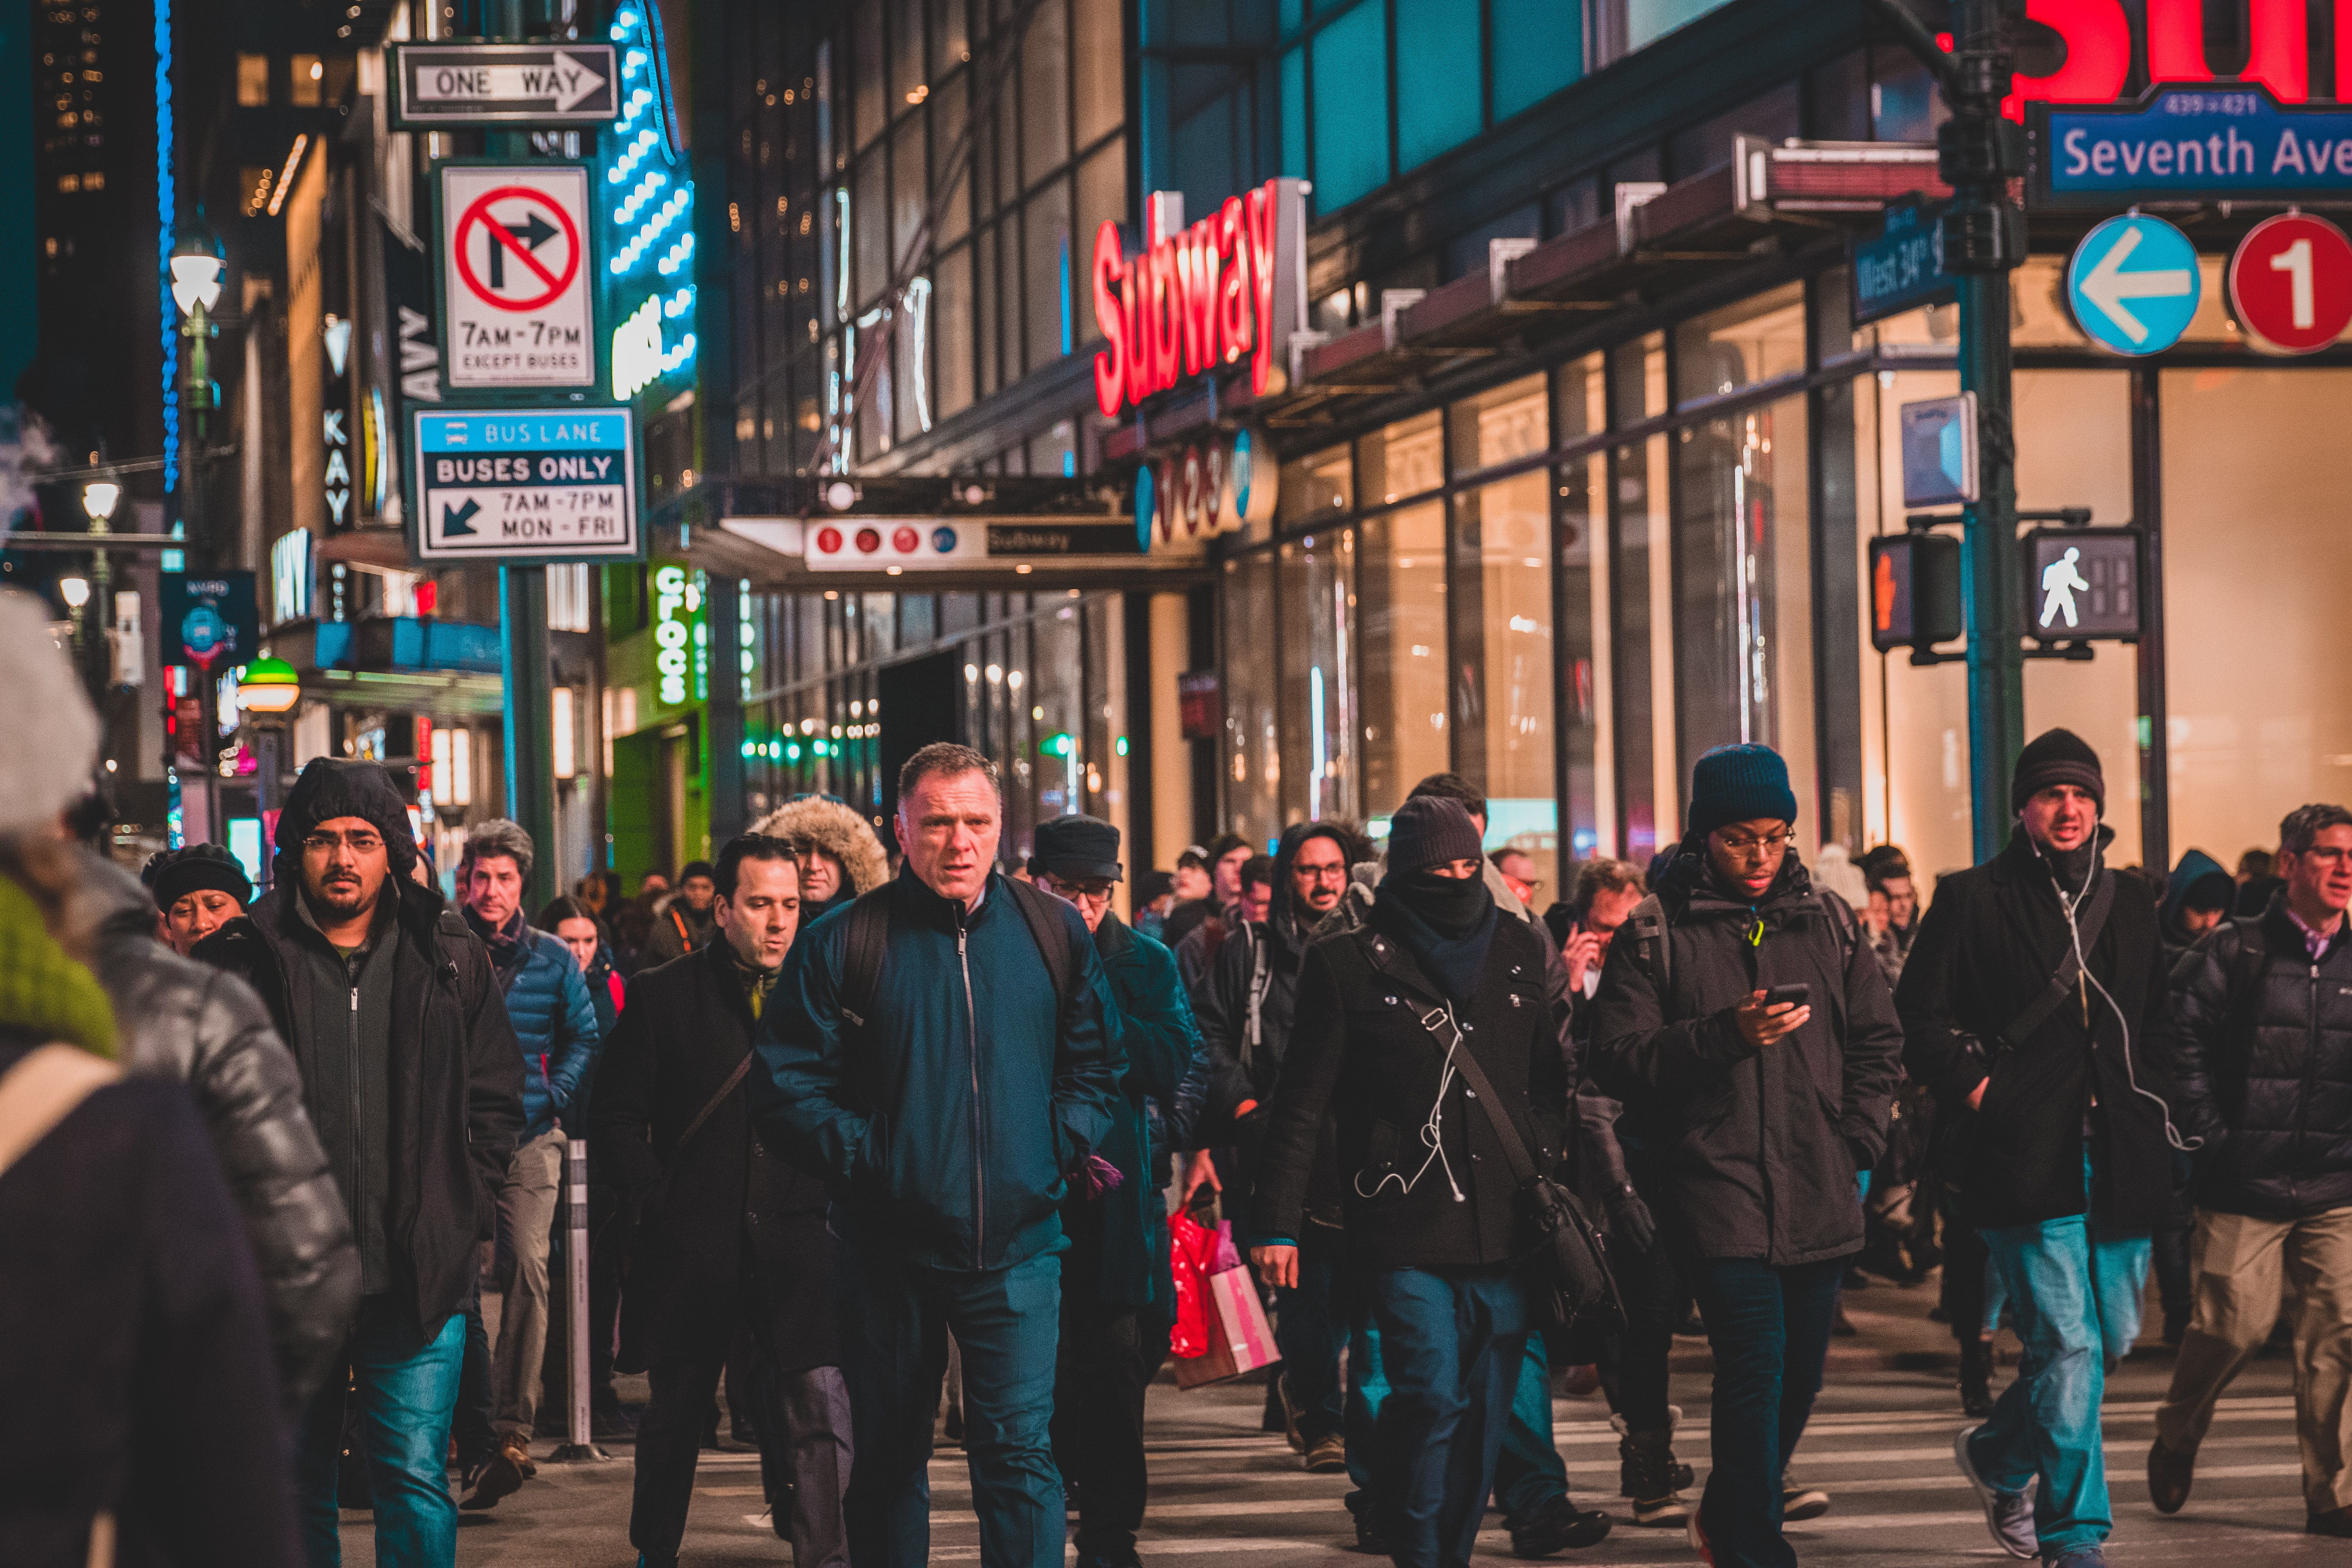 crowd of people walking on street at night time